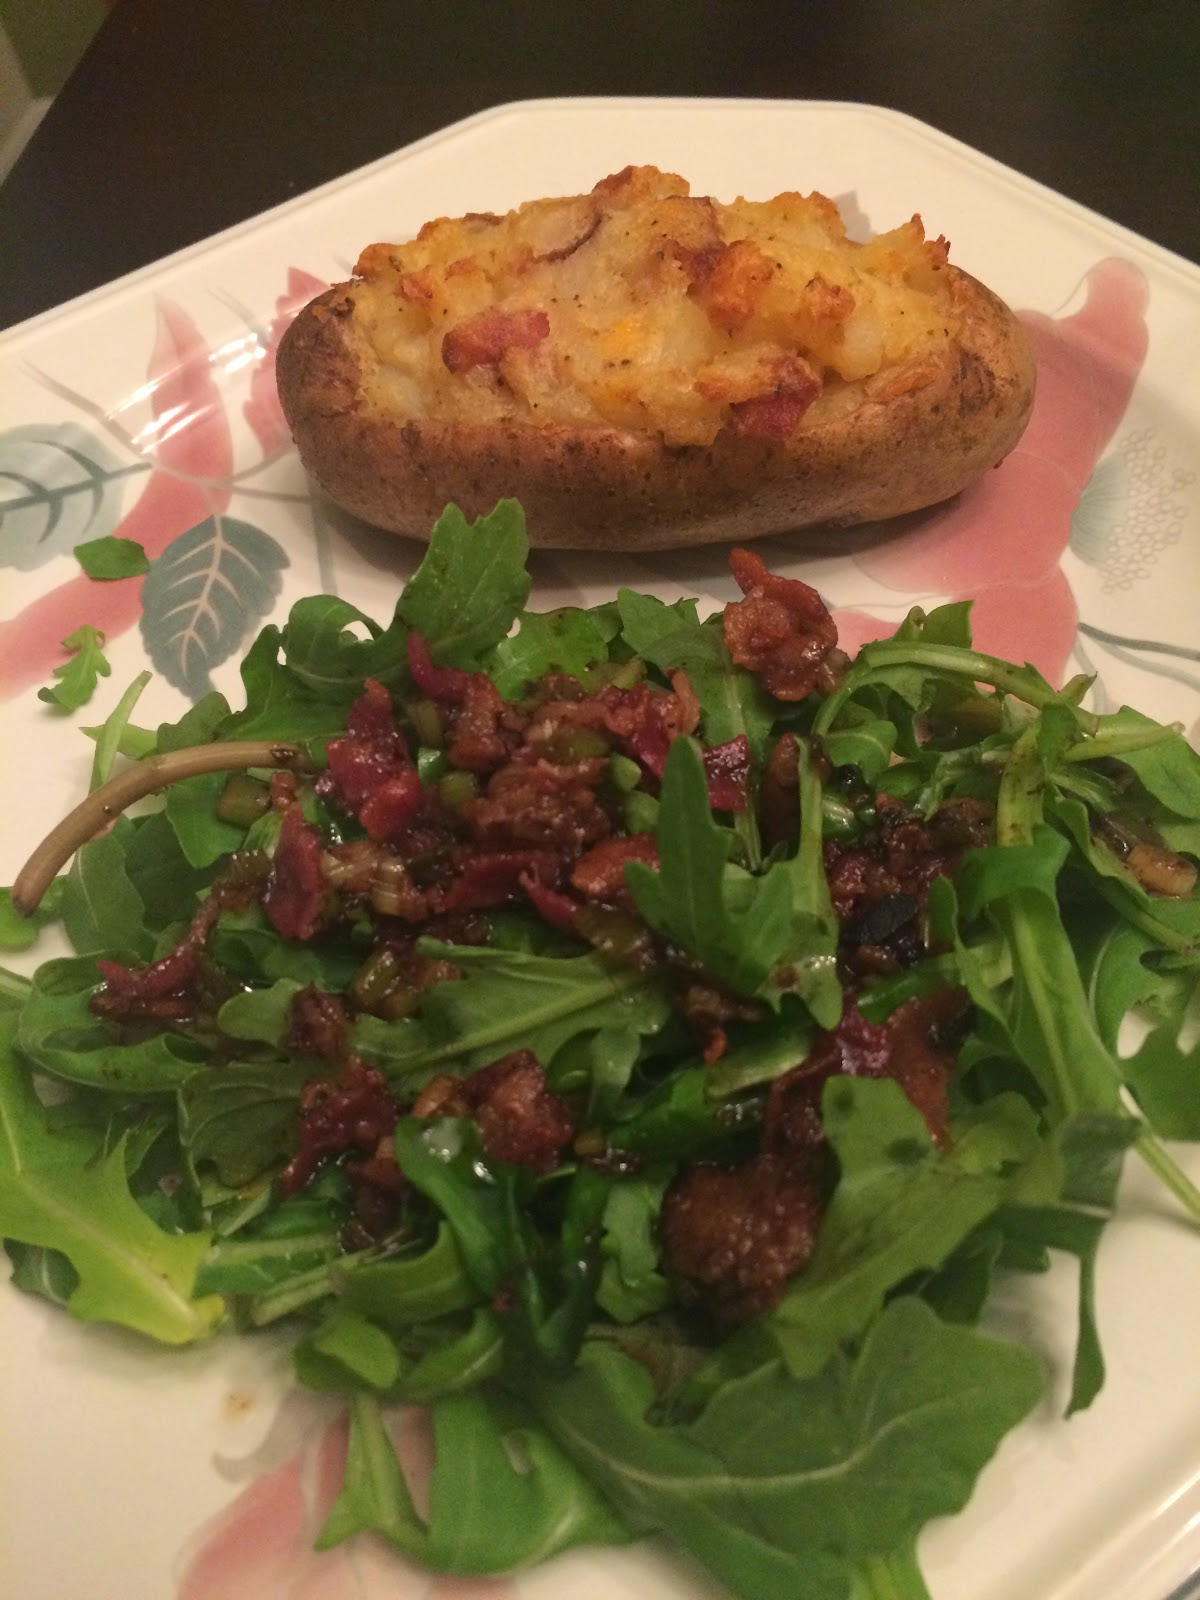 Twice Baked potatoes and arugula salad with warm bacon dressing